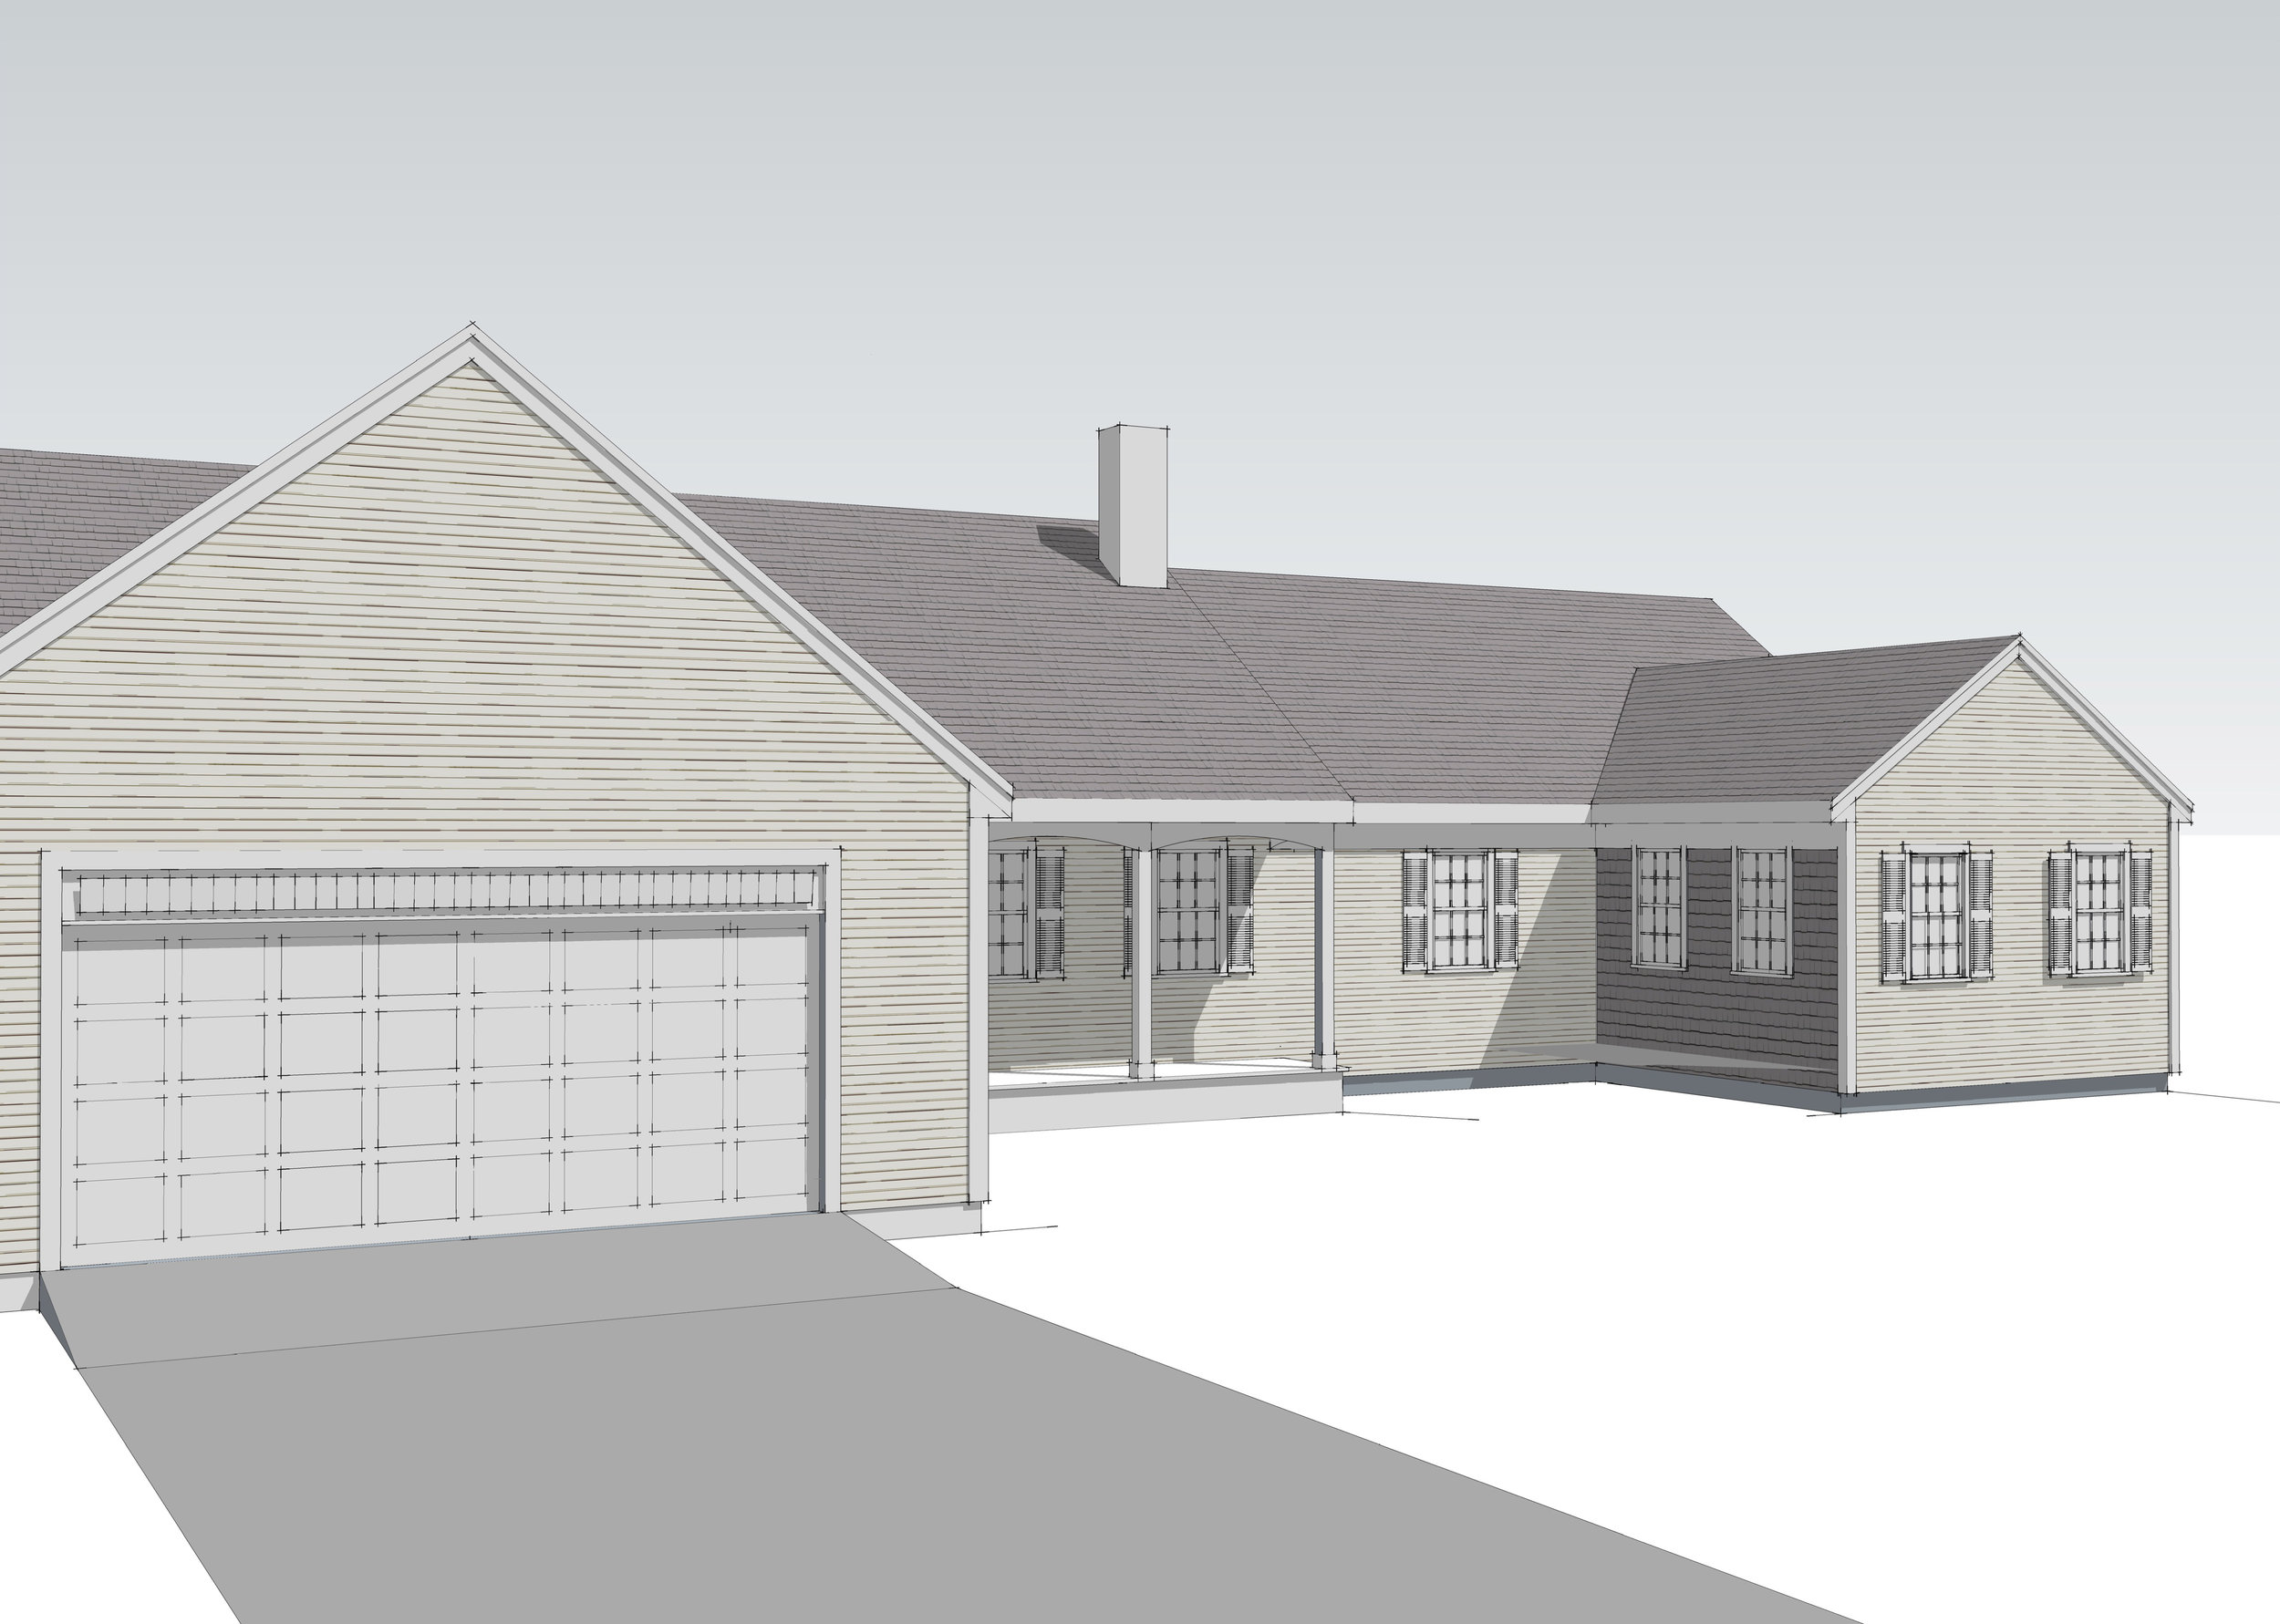 These 3D renderings helped a recent client with designing an addition (t  he gable on the right.) The existing house had some areas with white cedar shingles and others with clapboards. The client wanted to see the heights and size of addition, how far it was coming to the front, the space between garage and addition, and the size and amount of windows in the addition. I made sure that all the soffits align to the existing ones and that the added gable pitch matches the existing pitches. The renderings helped me demonstrate these points.